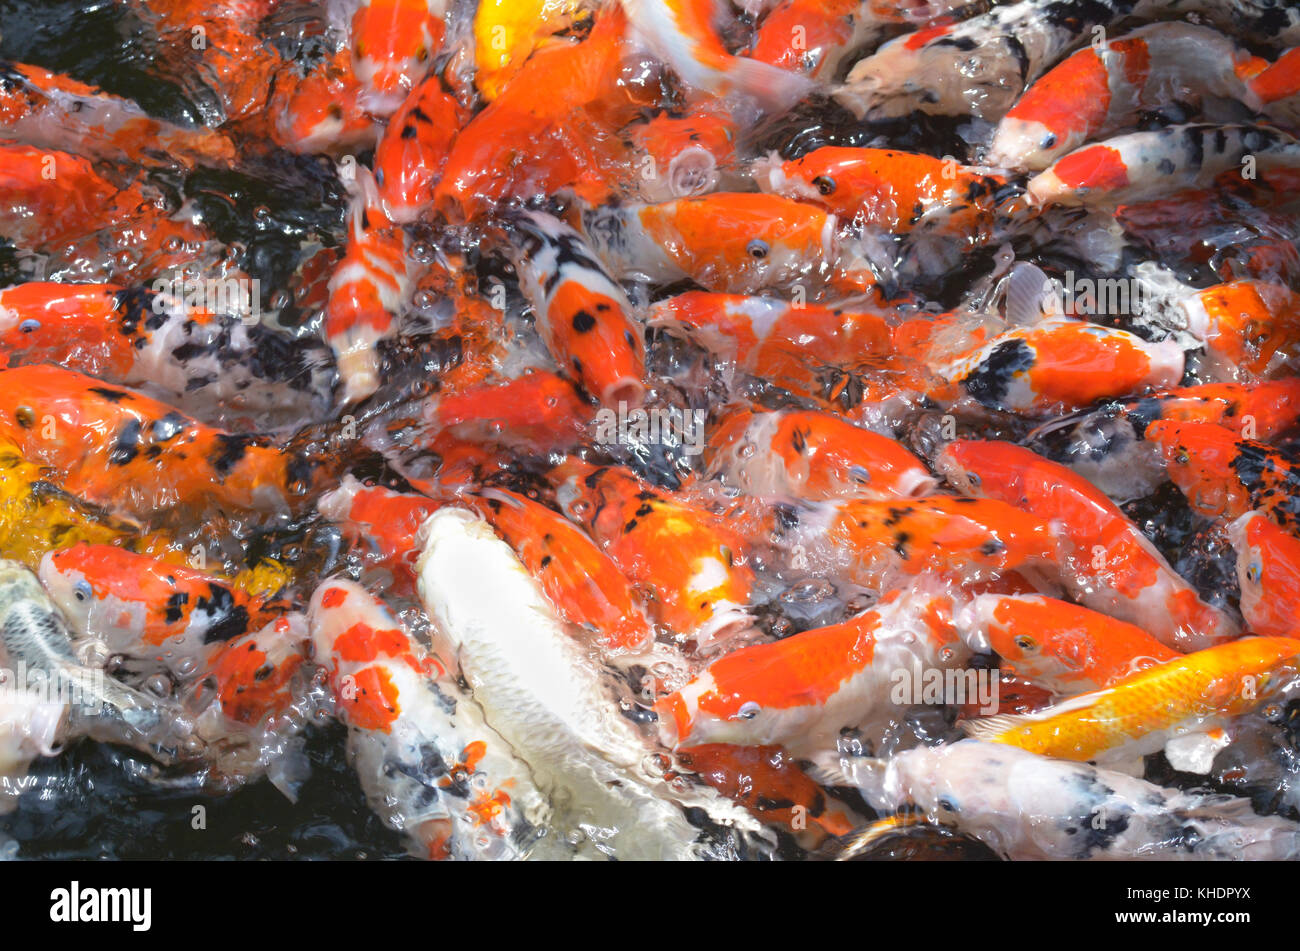 feeding carp/koi fish in pond.Koi or more specifically nishikigoi ...